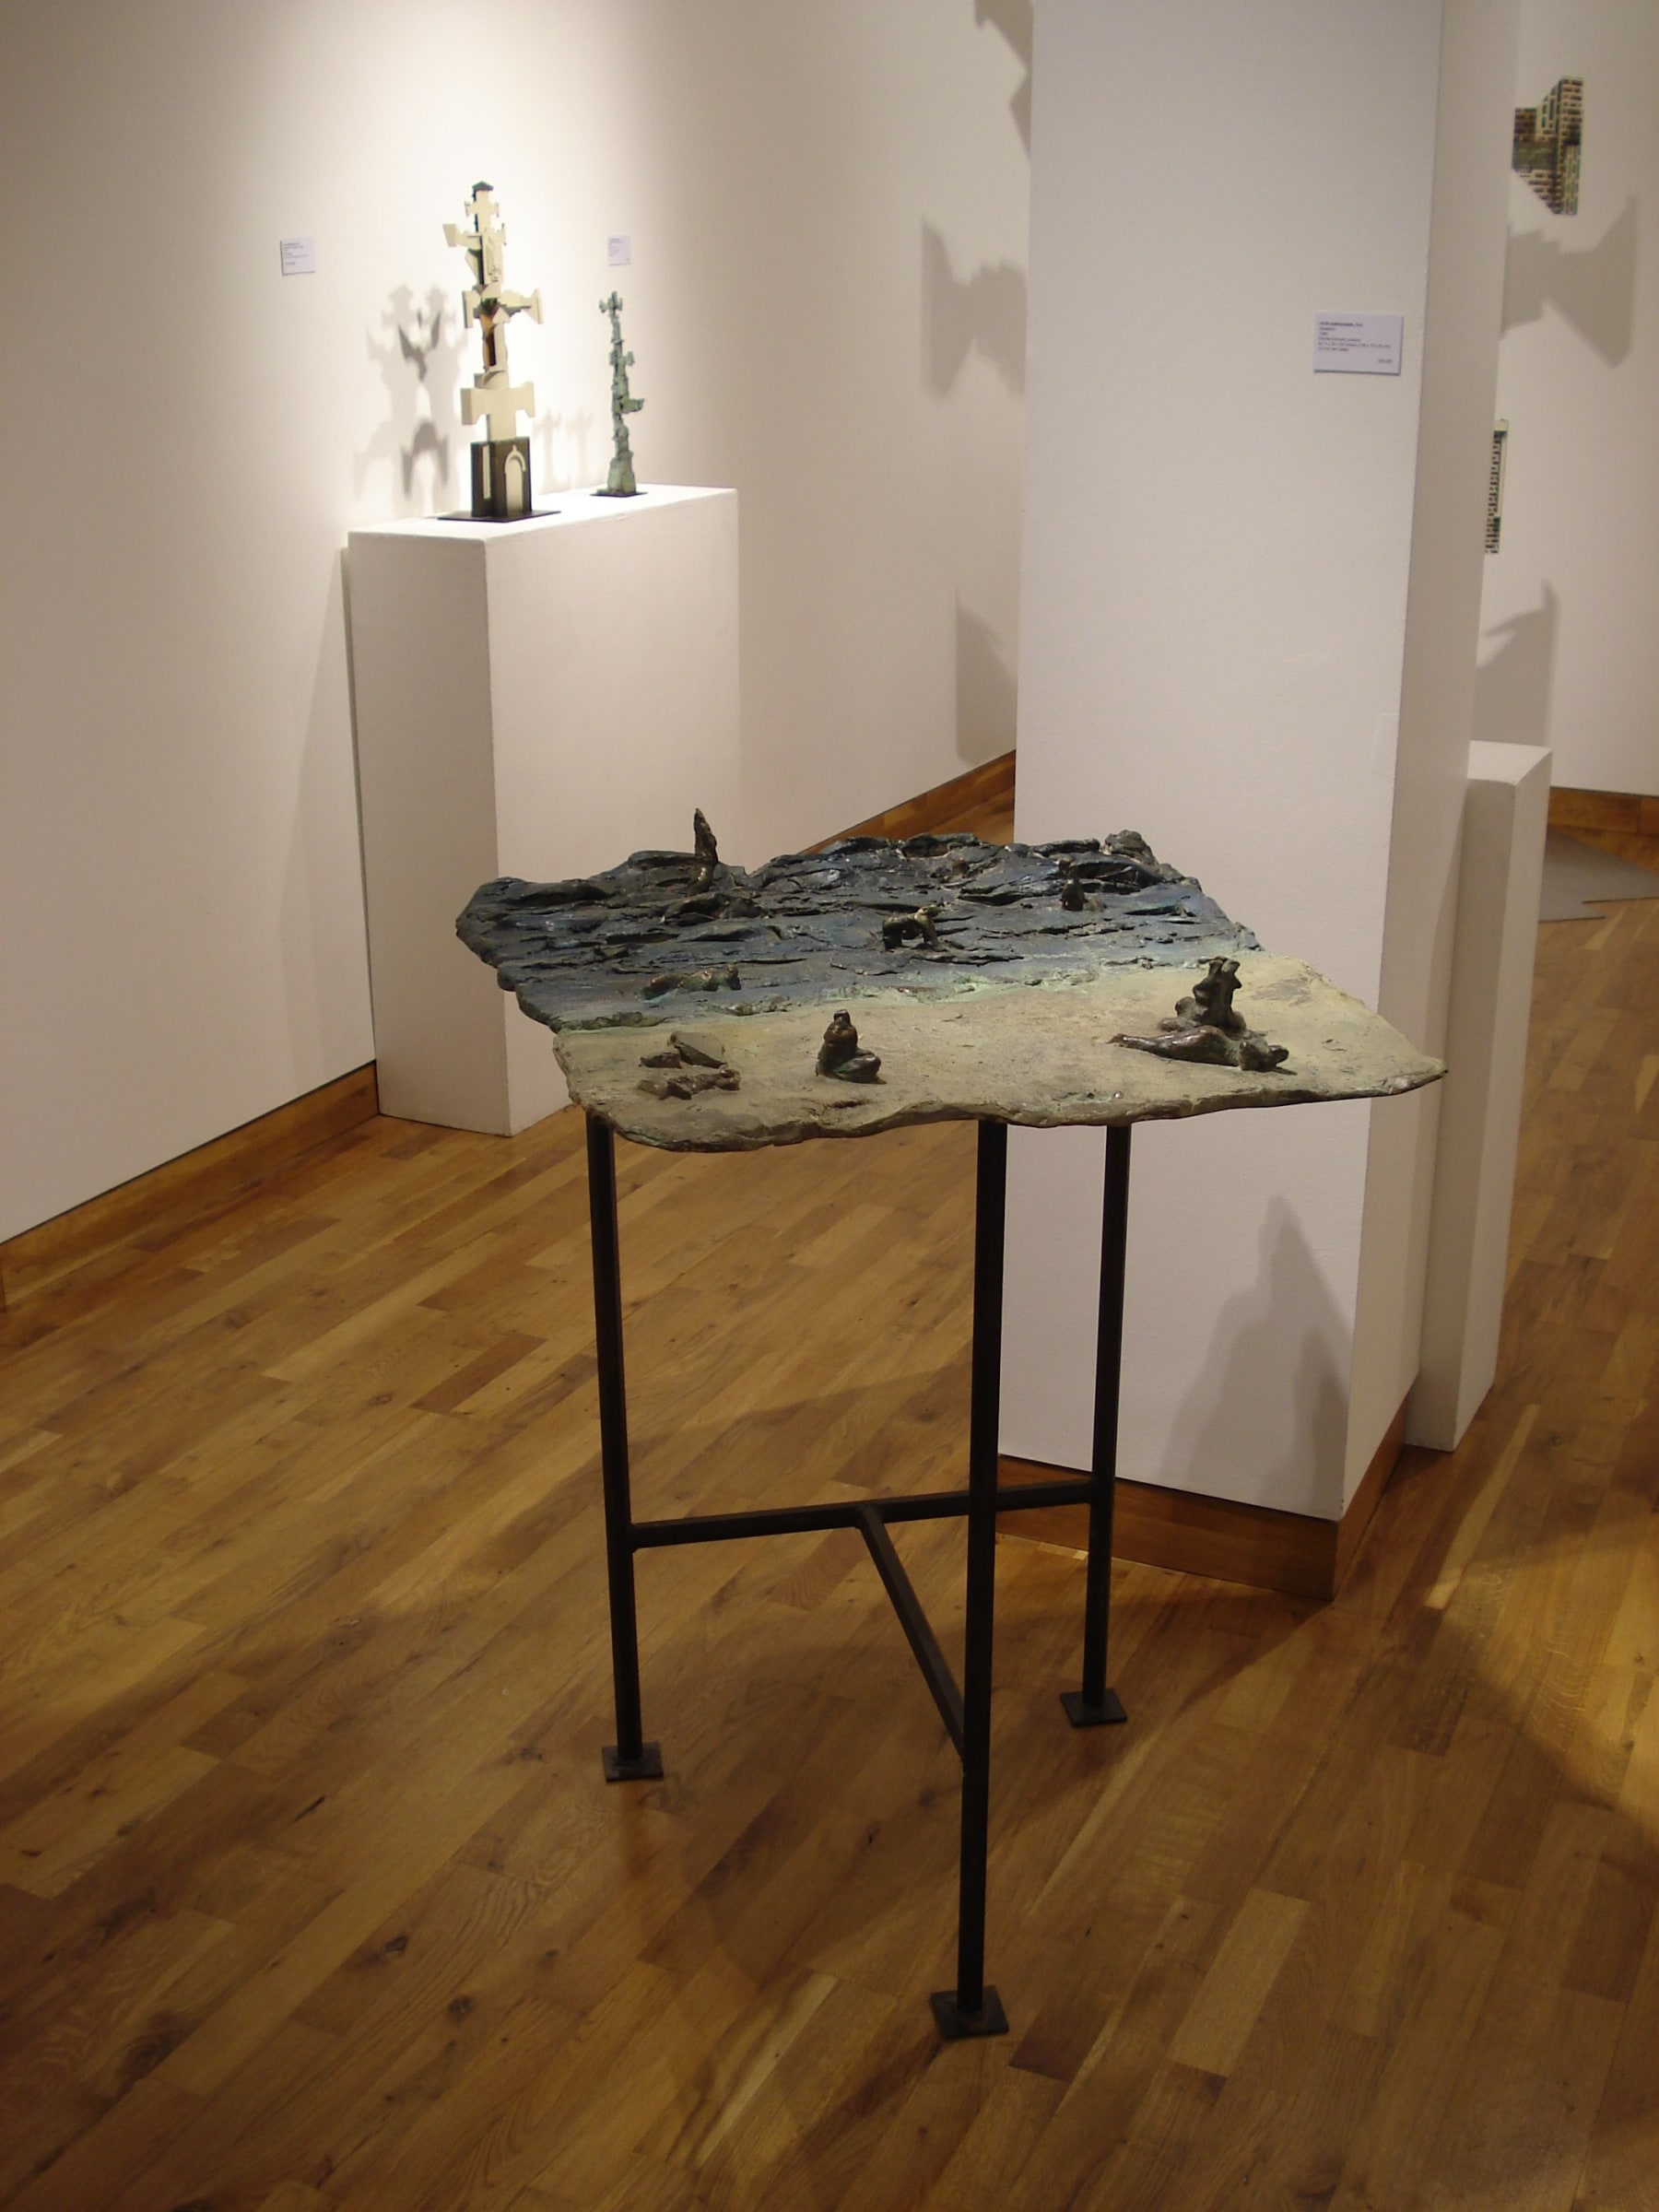 """<span class=""""link fancybox-details-link""""><a href=""""/exhibitions/103/works/image_standalone401/"""">View Detail Page</a></span><p>IVOR ABRAHAMS RA   PAINTED SCULPTURE   04 FEB - 21 FEB 2008   Installation View</p>"""